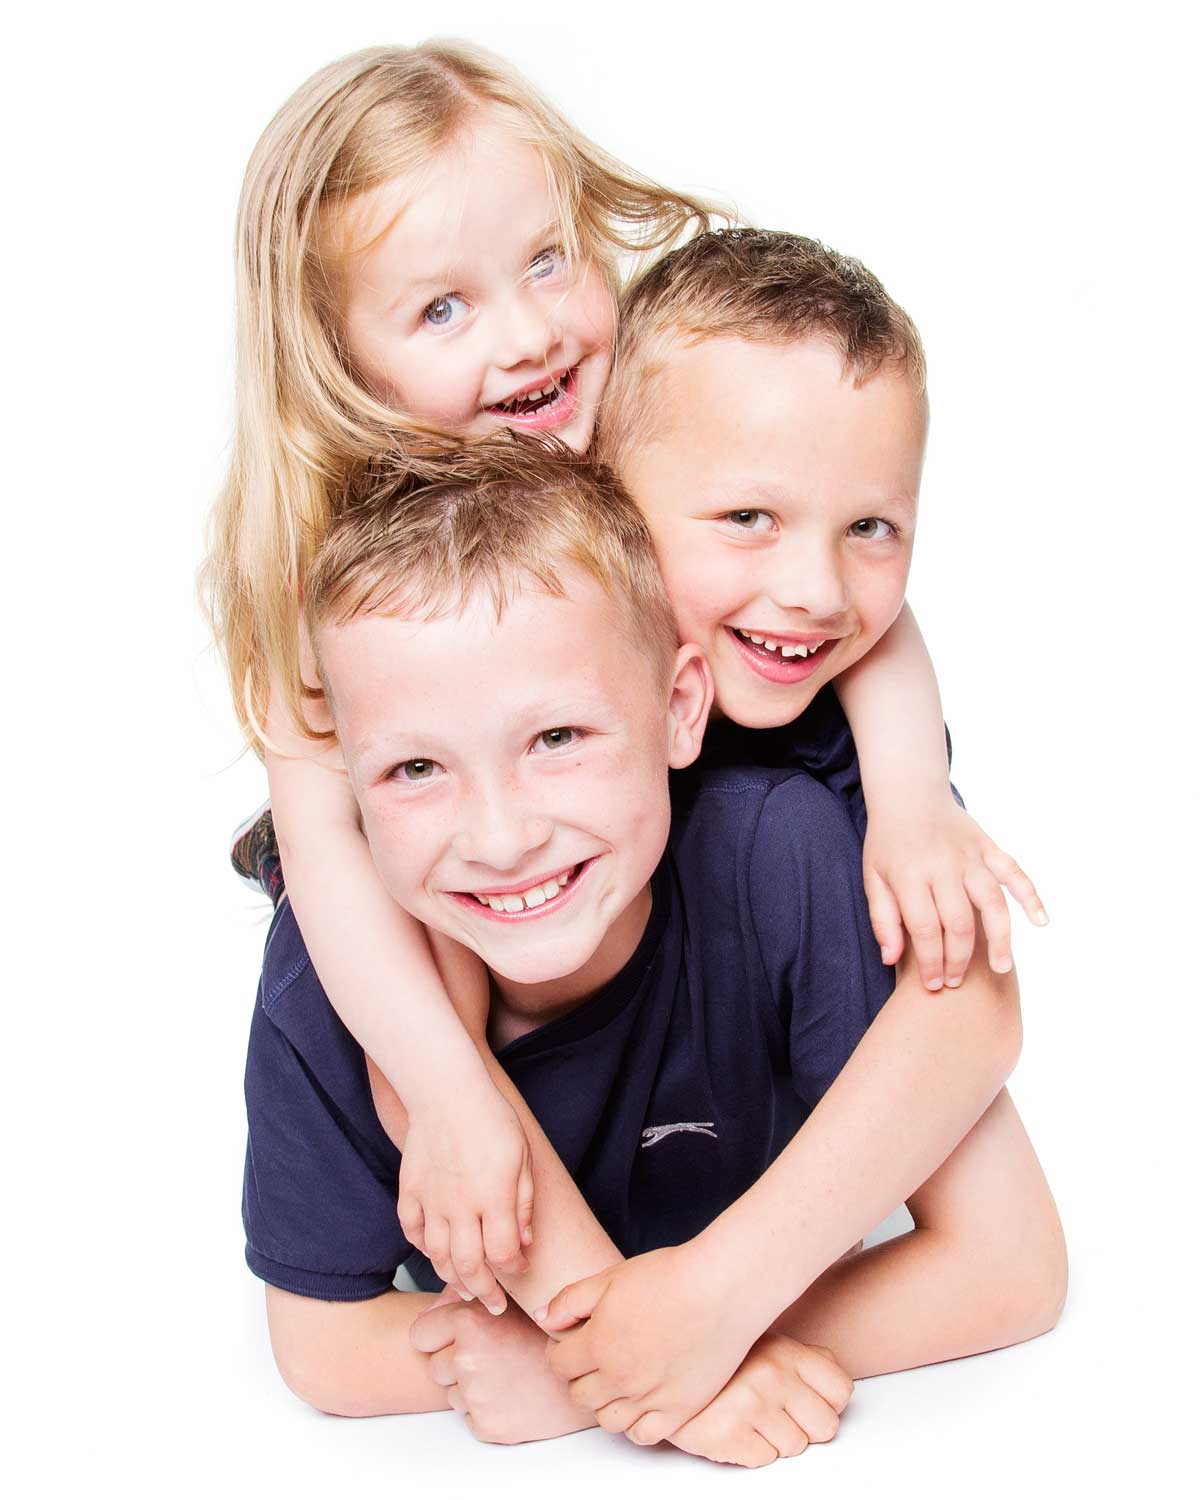 02-Home-Shoot-Boys-Brothers-Girl-Sister-Pile-Colour-Philip-Murray-Photography-Dublin